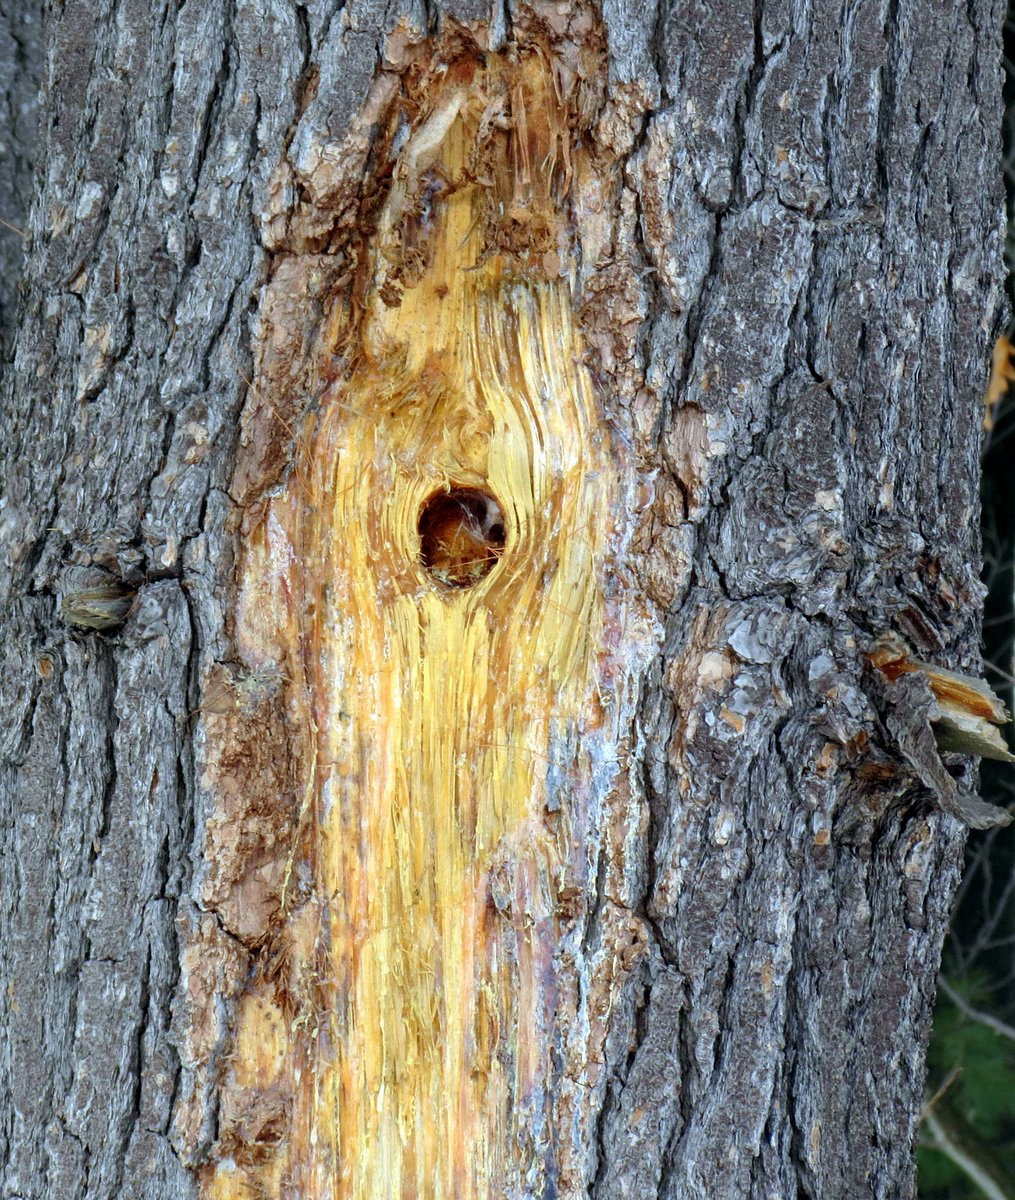 7. Hole in Pine Tree